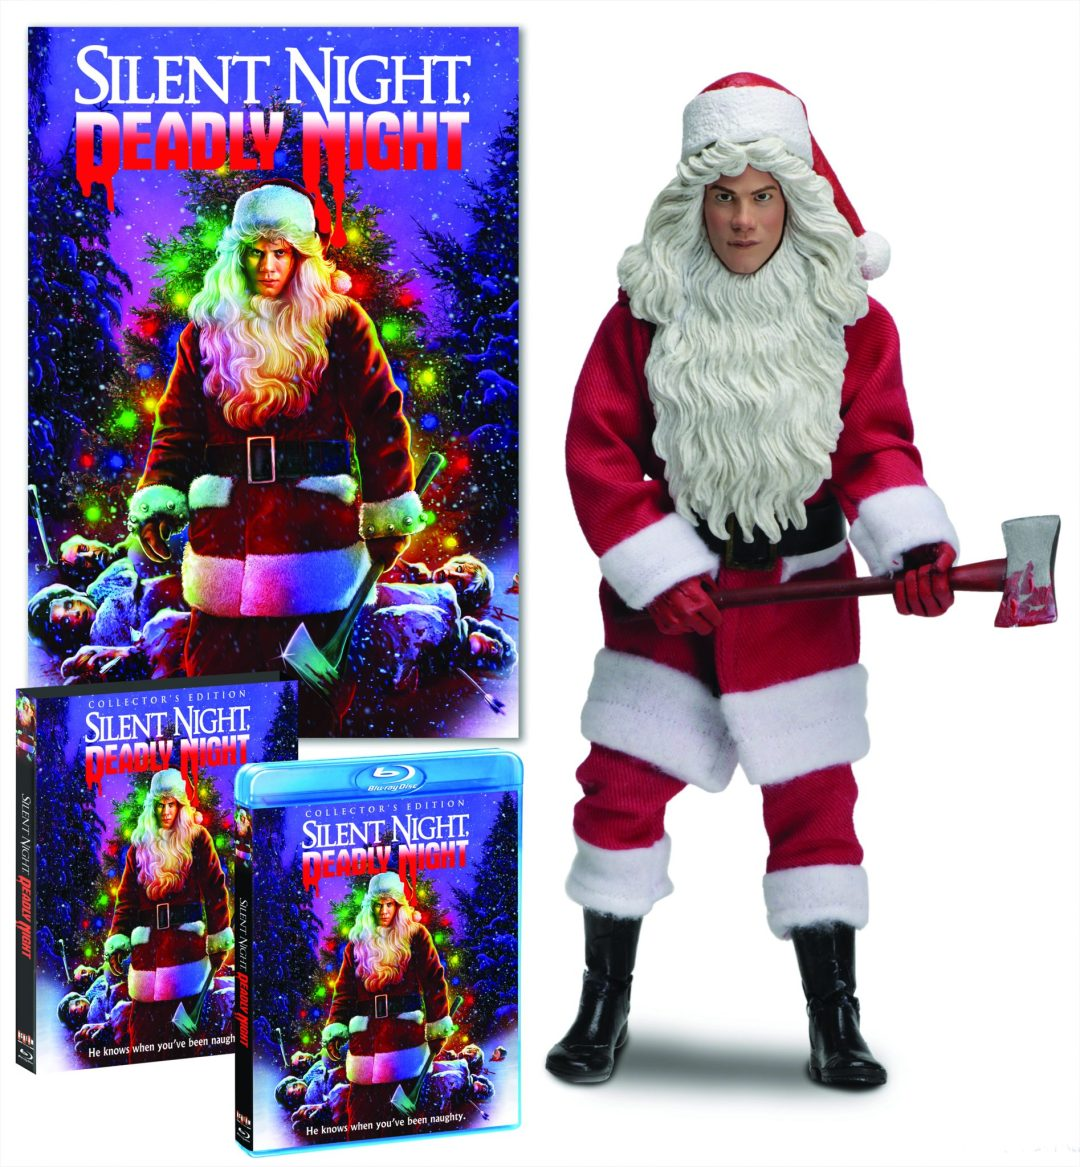 Exclusive Website-Only Deluxe Offer for 'Silent Night, Deadly Night' — Only 2,000 Available!